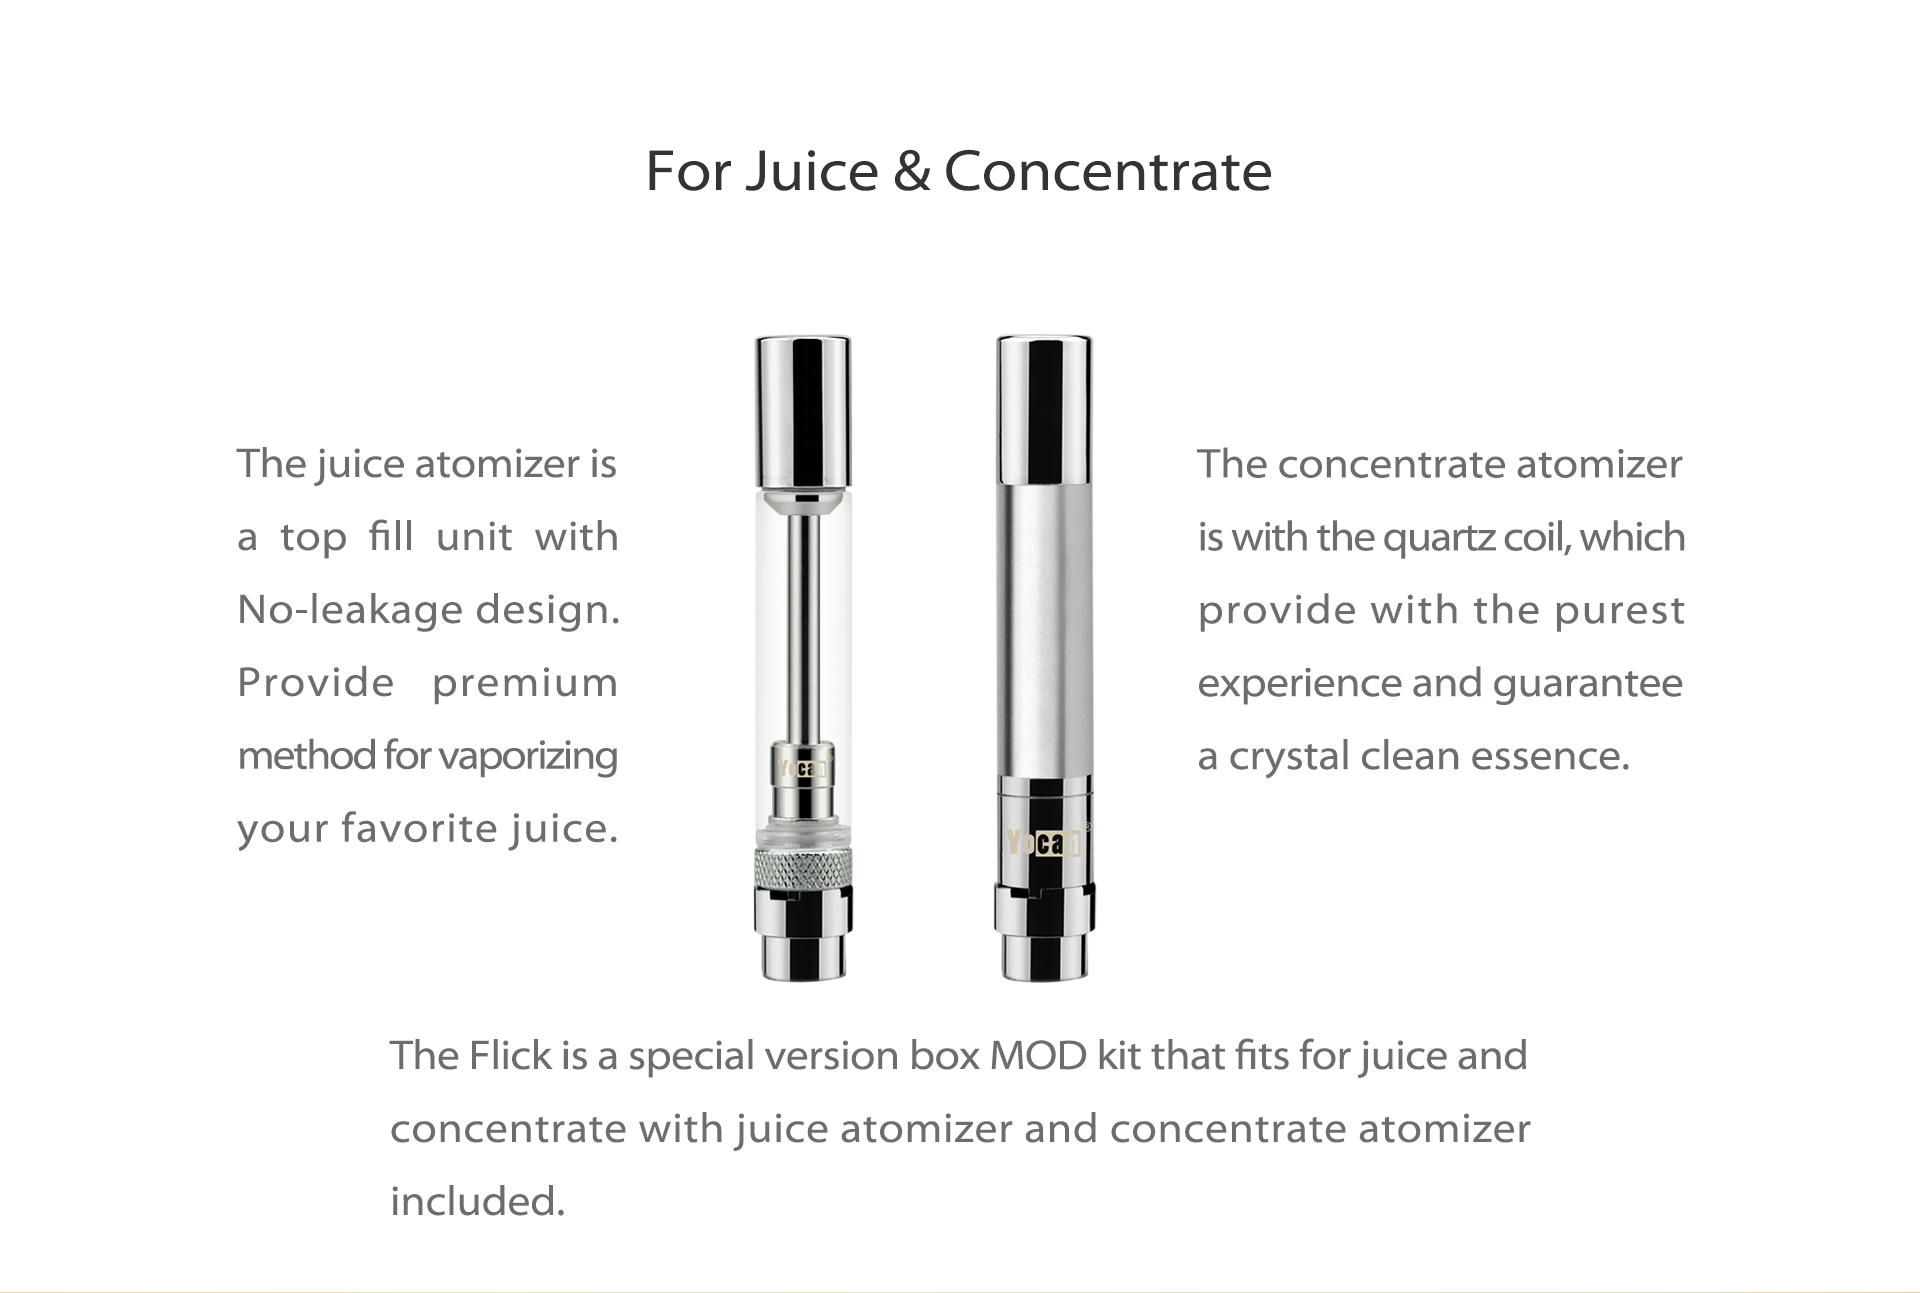 The Yocan Flick is a 2-in-1 box mod with the ability to be used with e-liquids and wax concentrates.